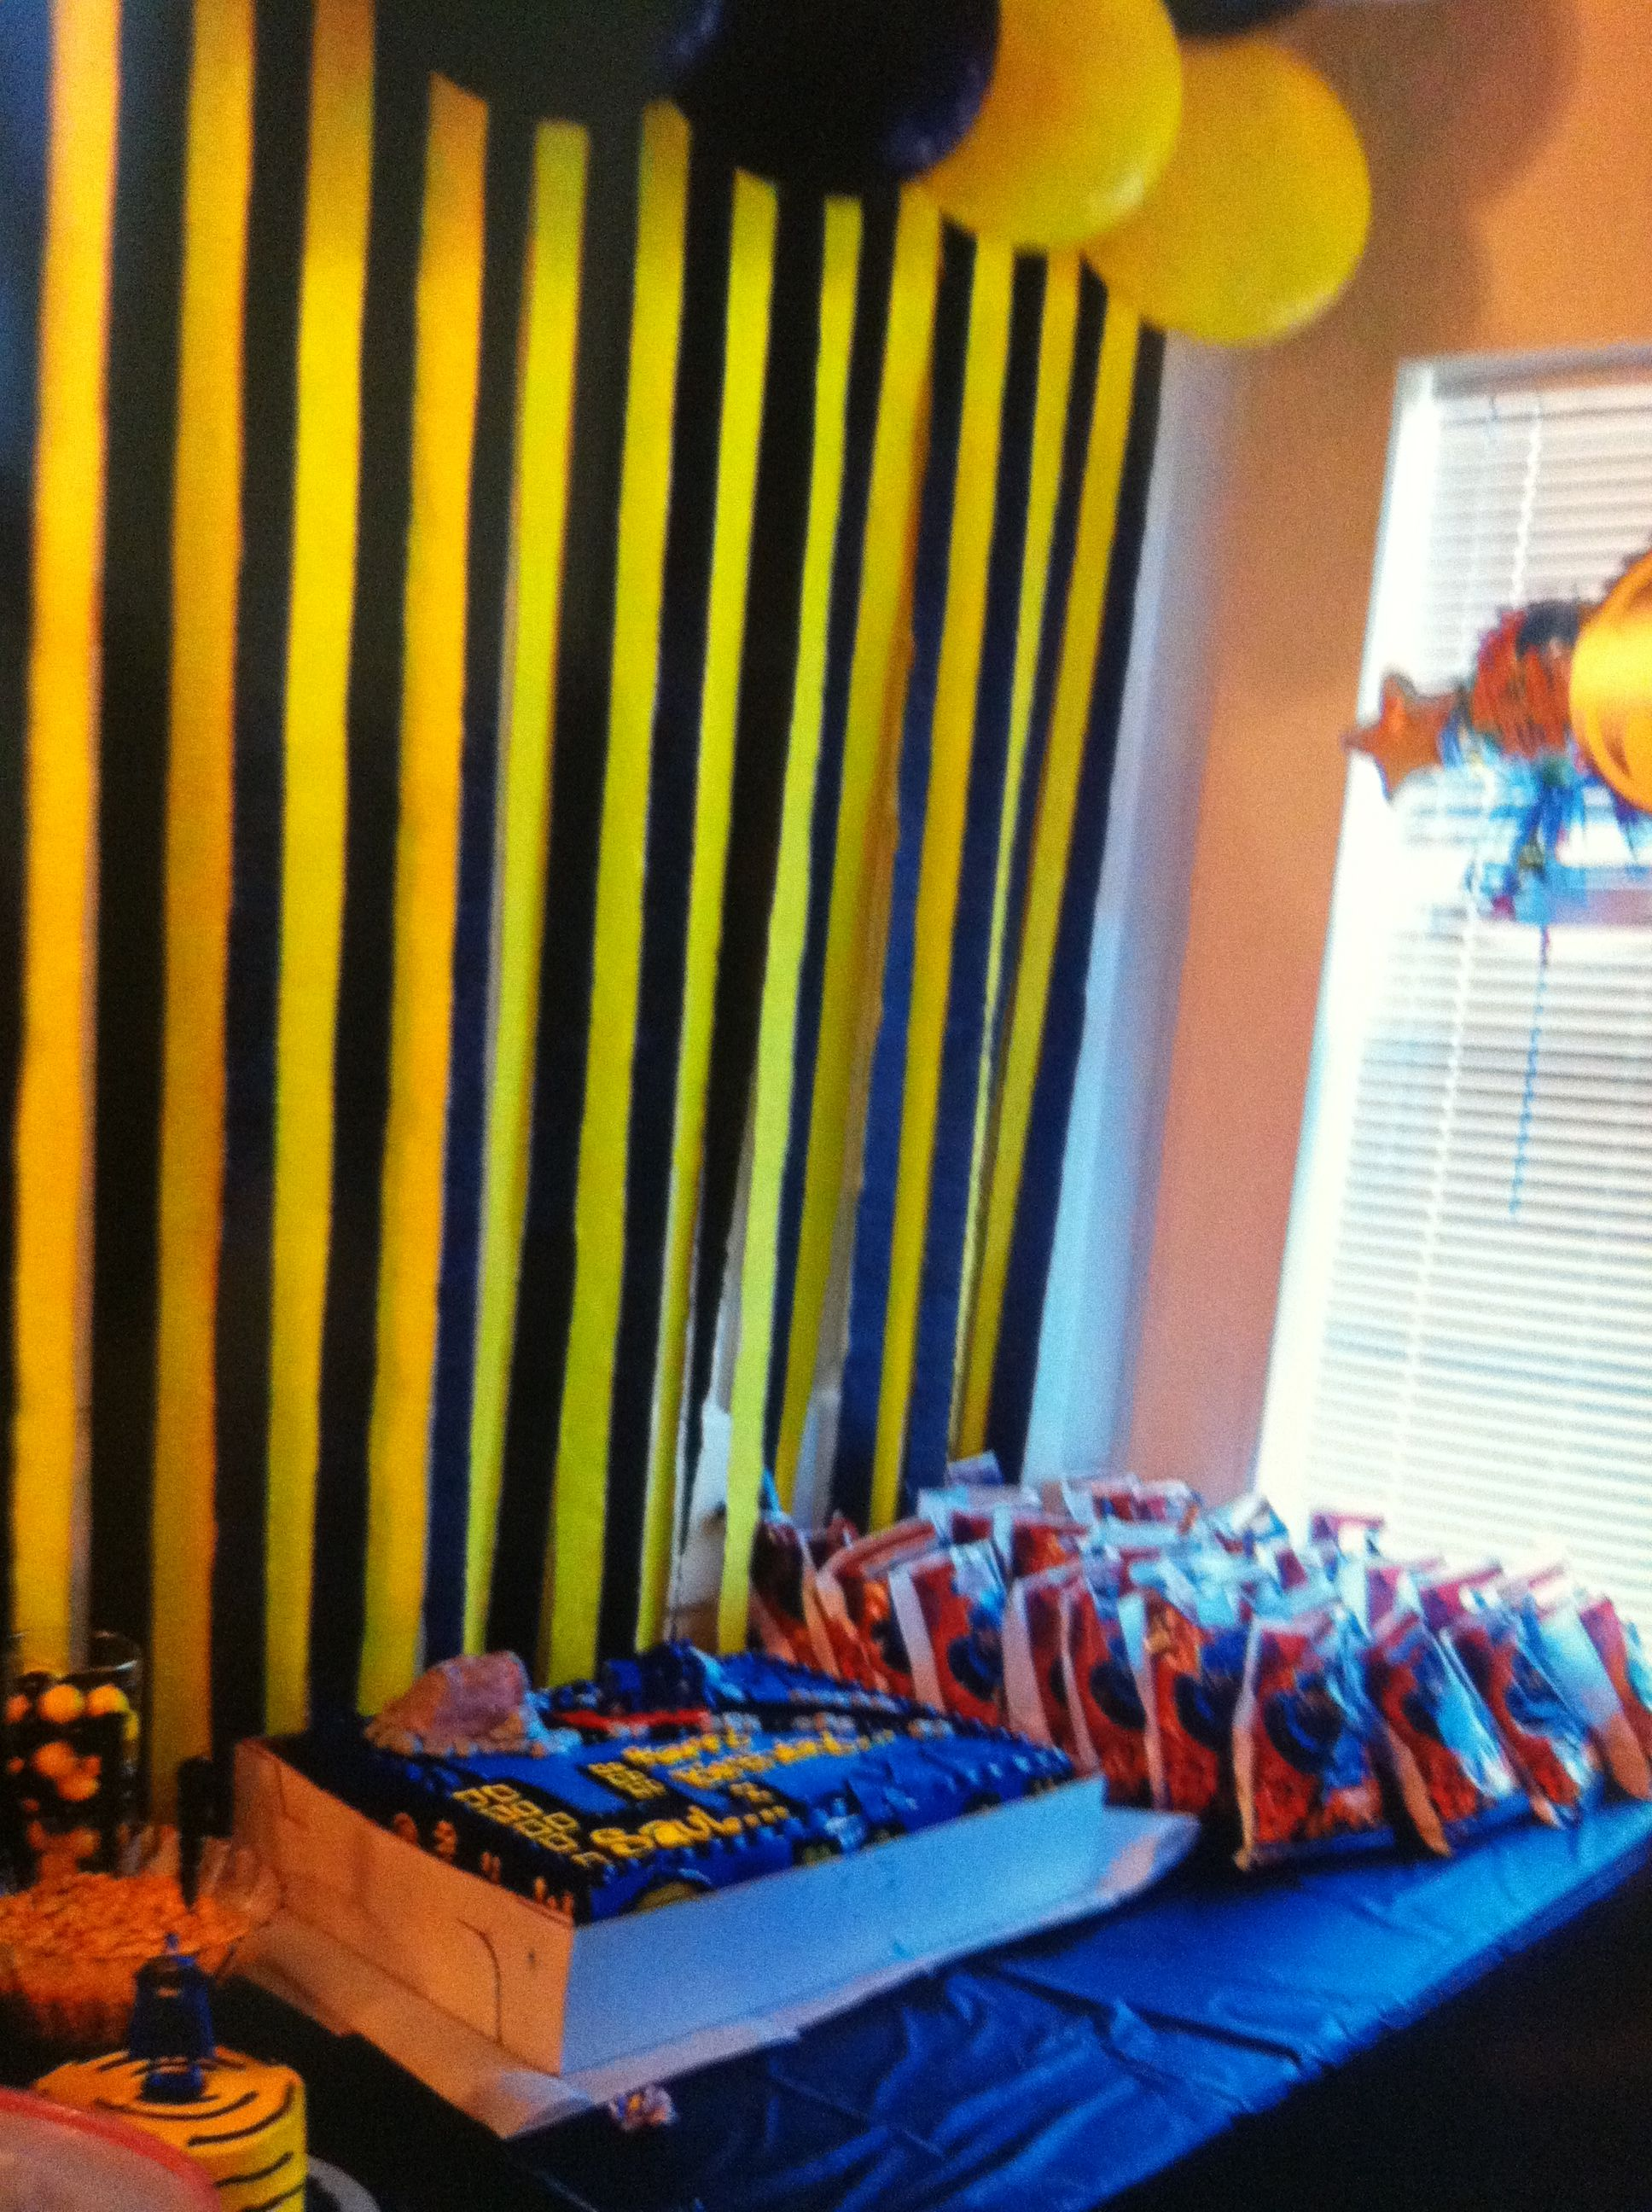 Batman Birthday Party Great Idea On The Black And